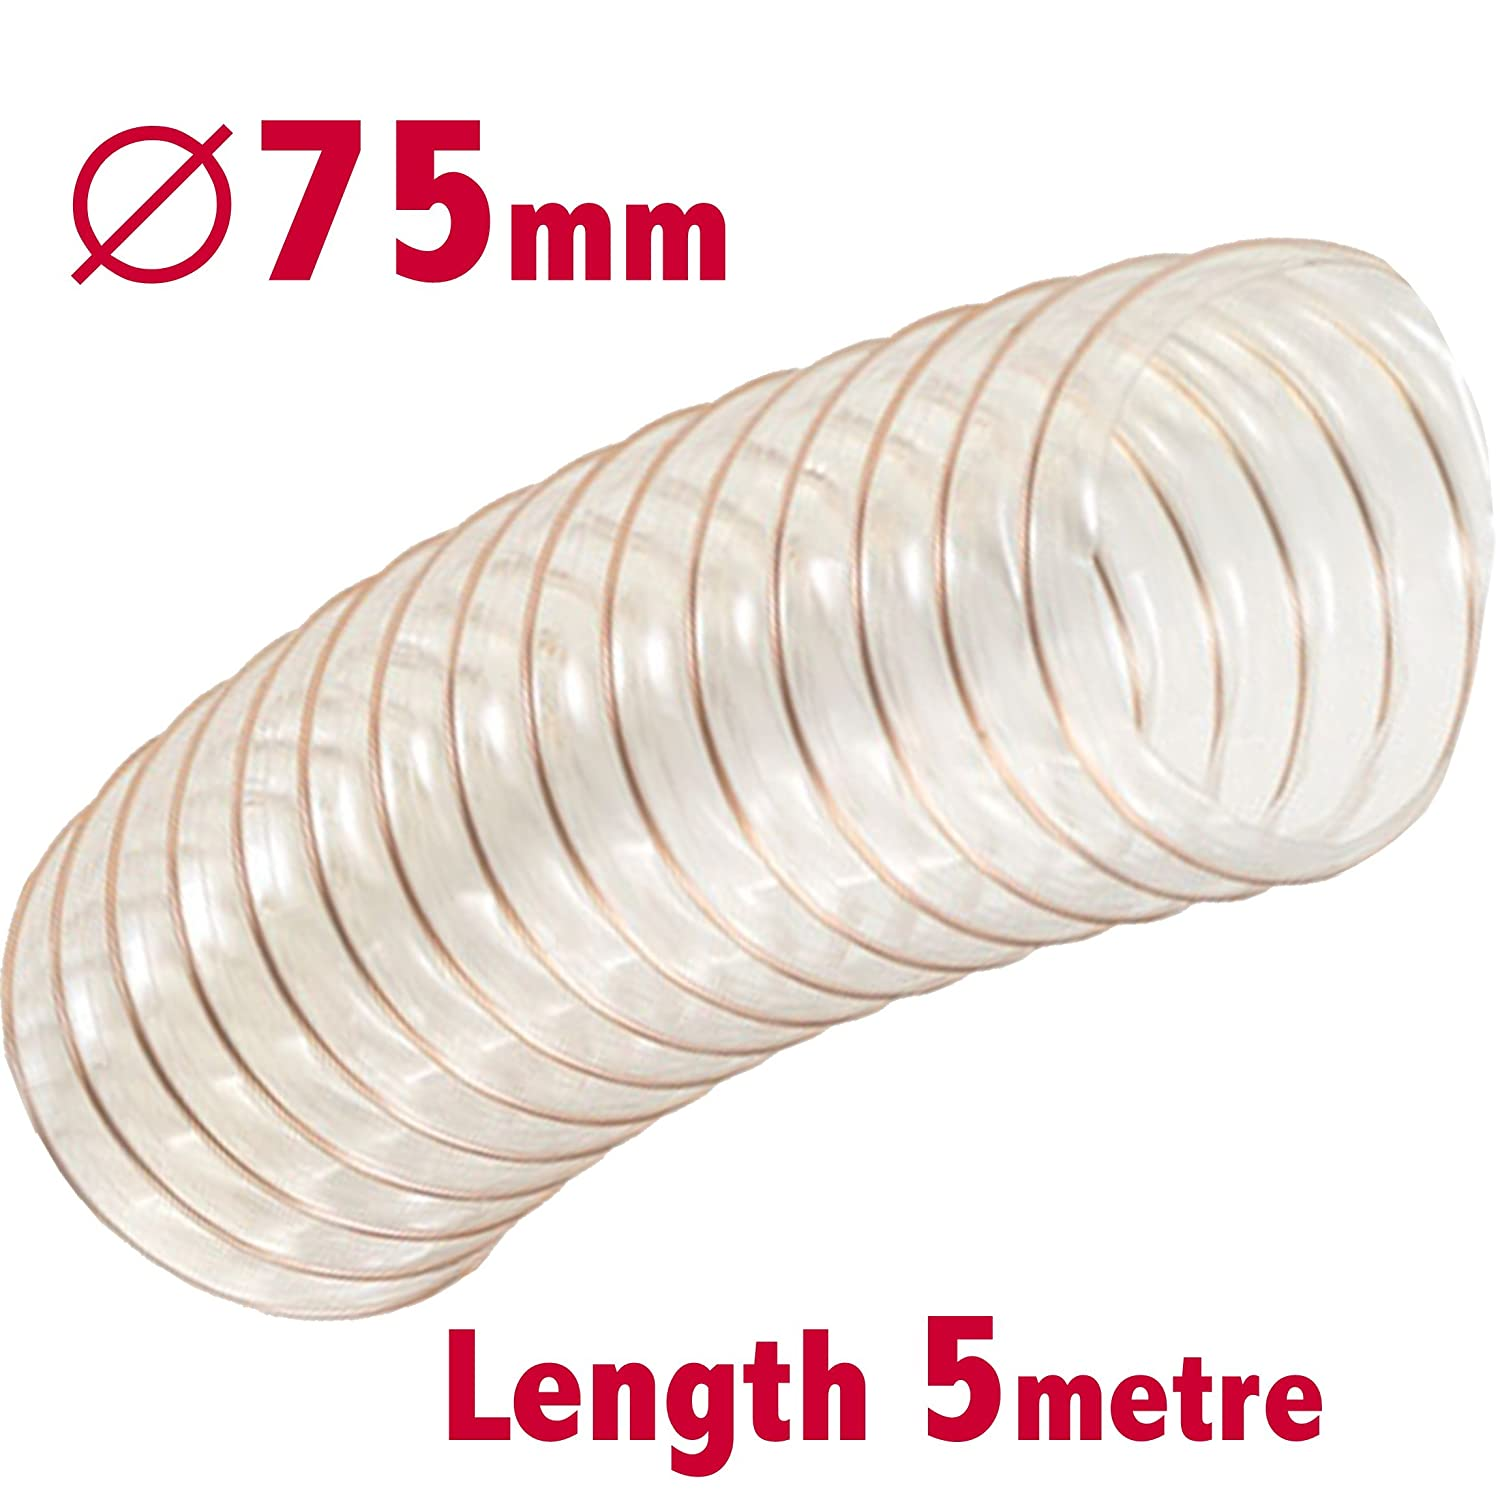 Flexible Clear Dust Extractor Hose 75mm ID x 5m Length Sawdust Fume Extraction Woodworking Ventilation Ducting Pipe PLI